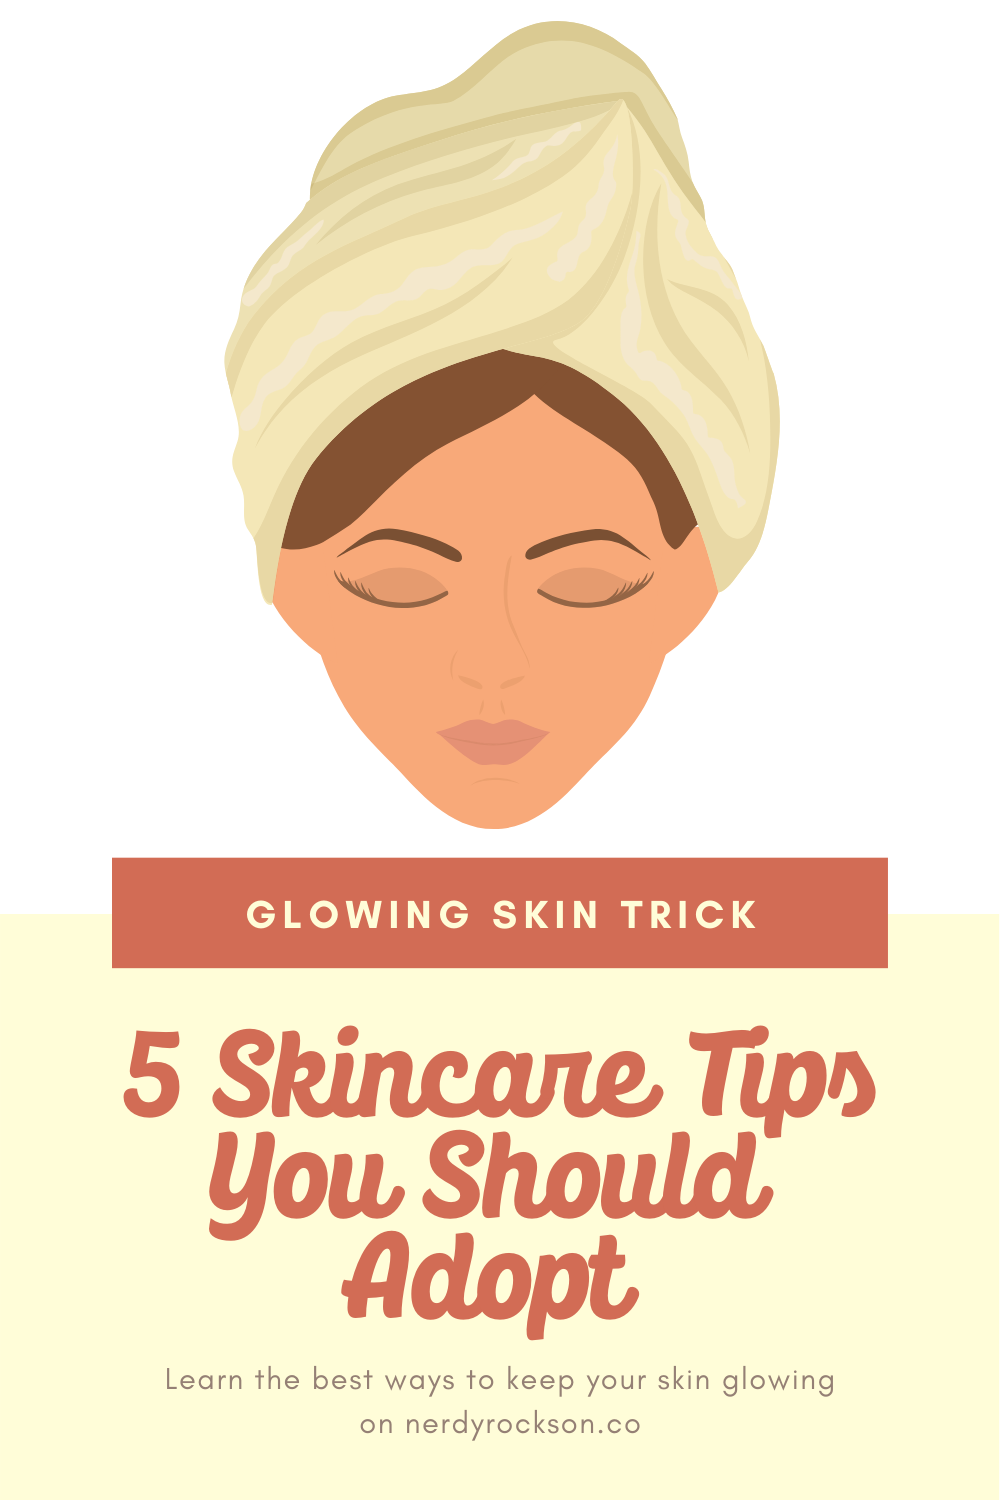 Skincare Tips You Should Adopt